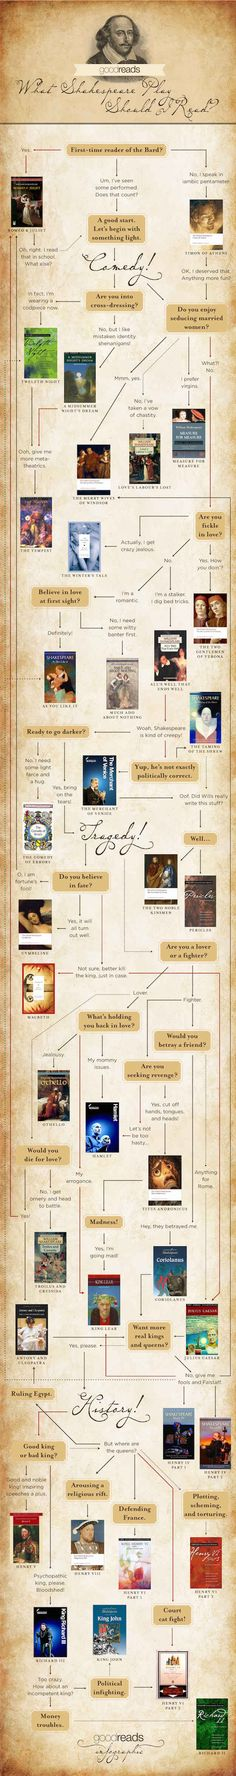 Hmmmmm—what Shakespeare play should you read next?